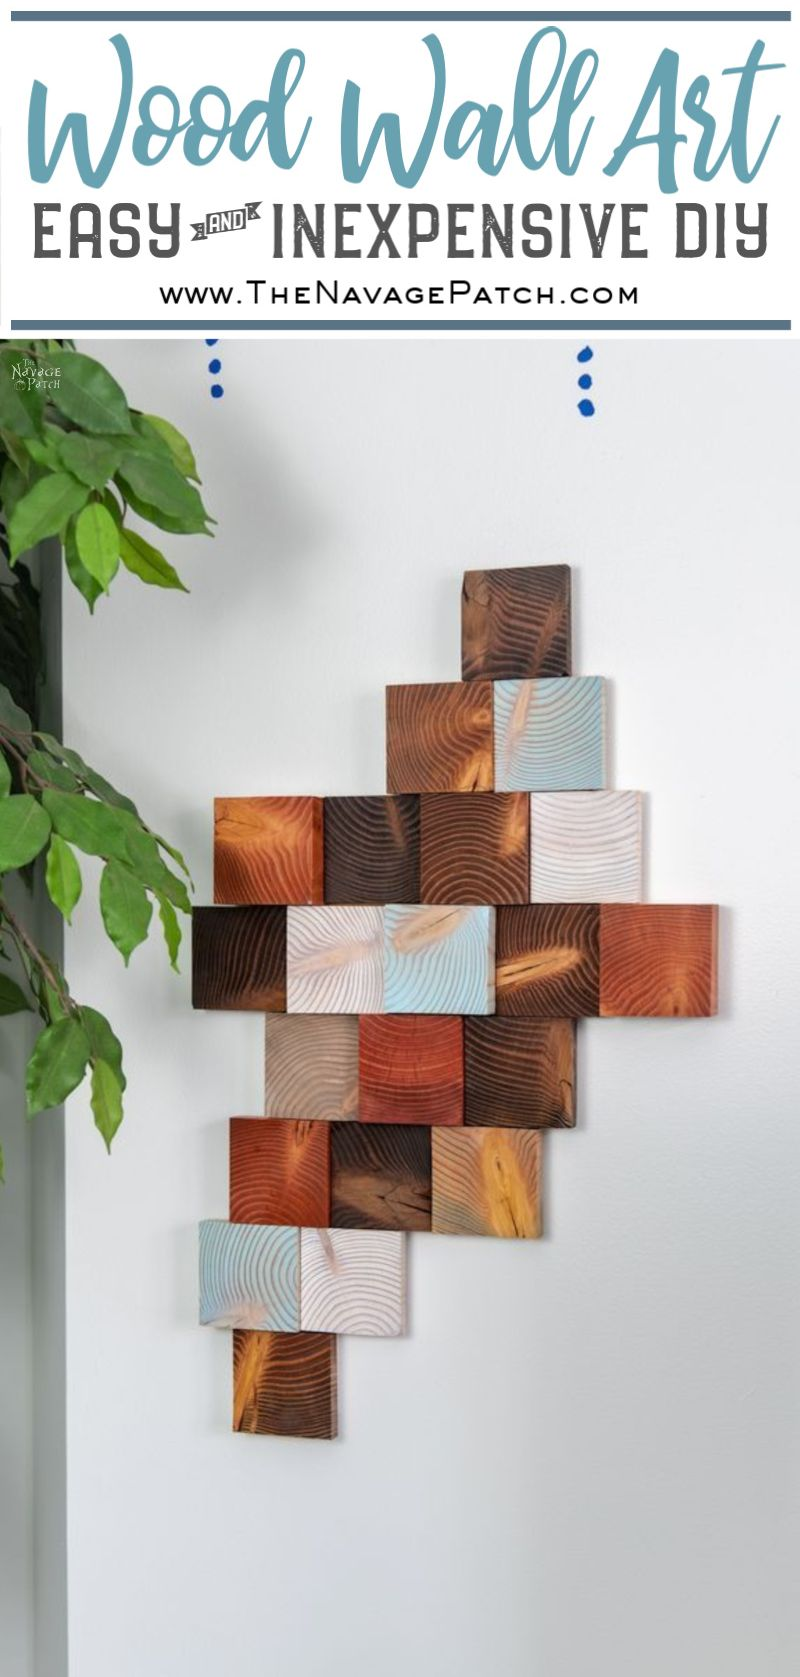 DIY wood wall art pin image